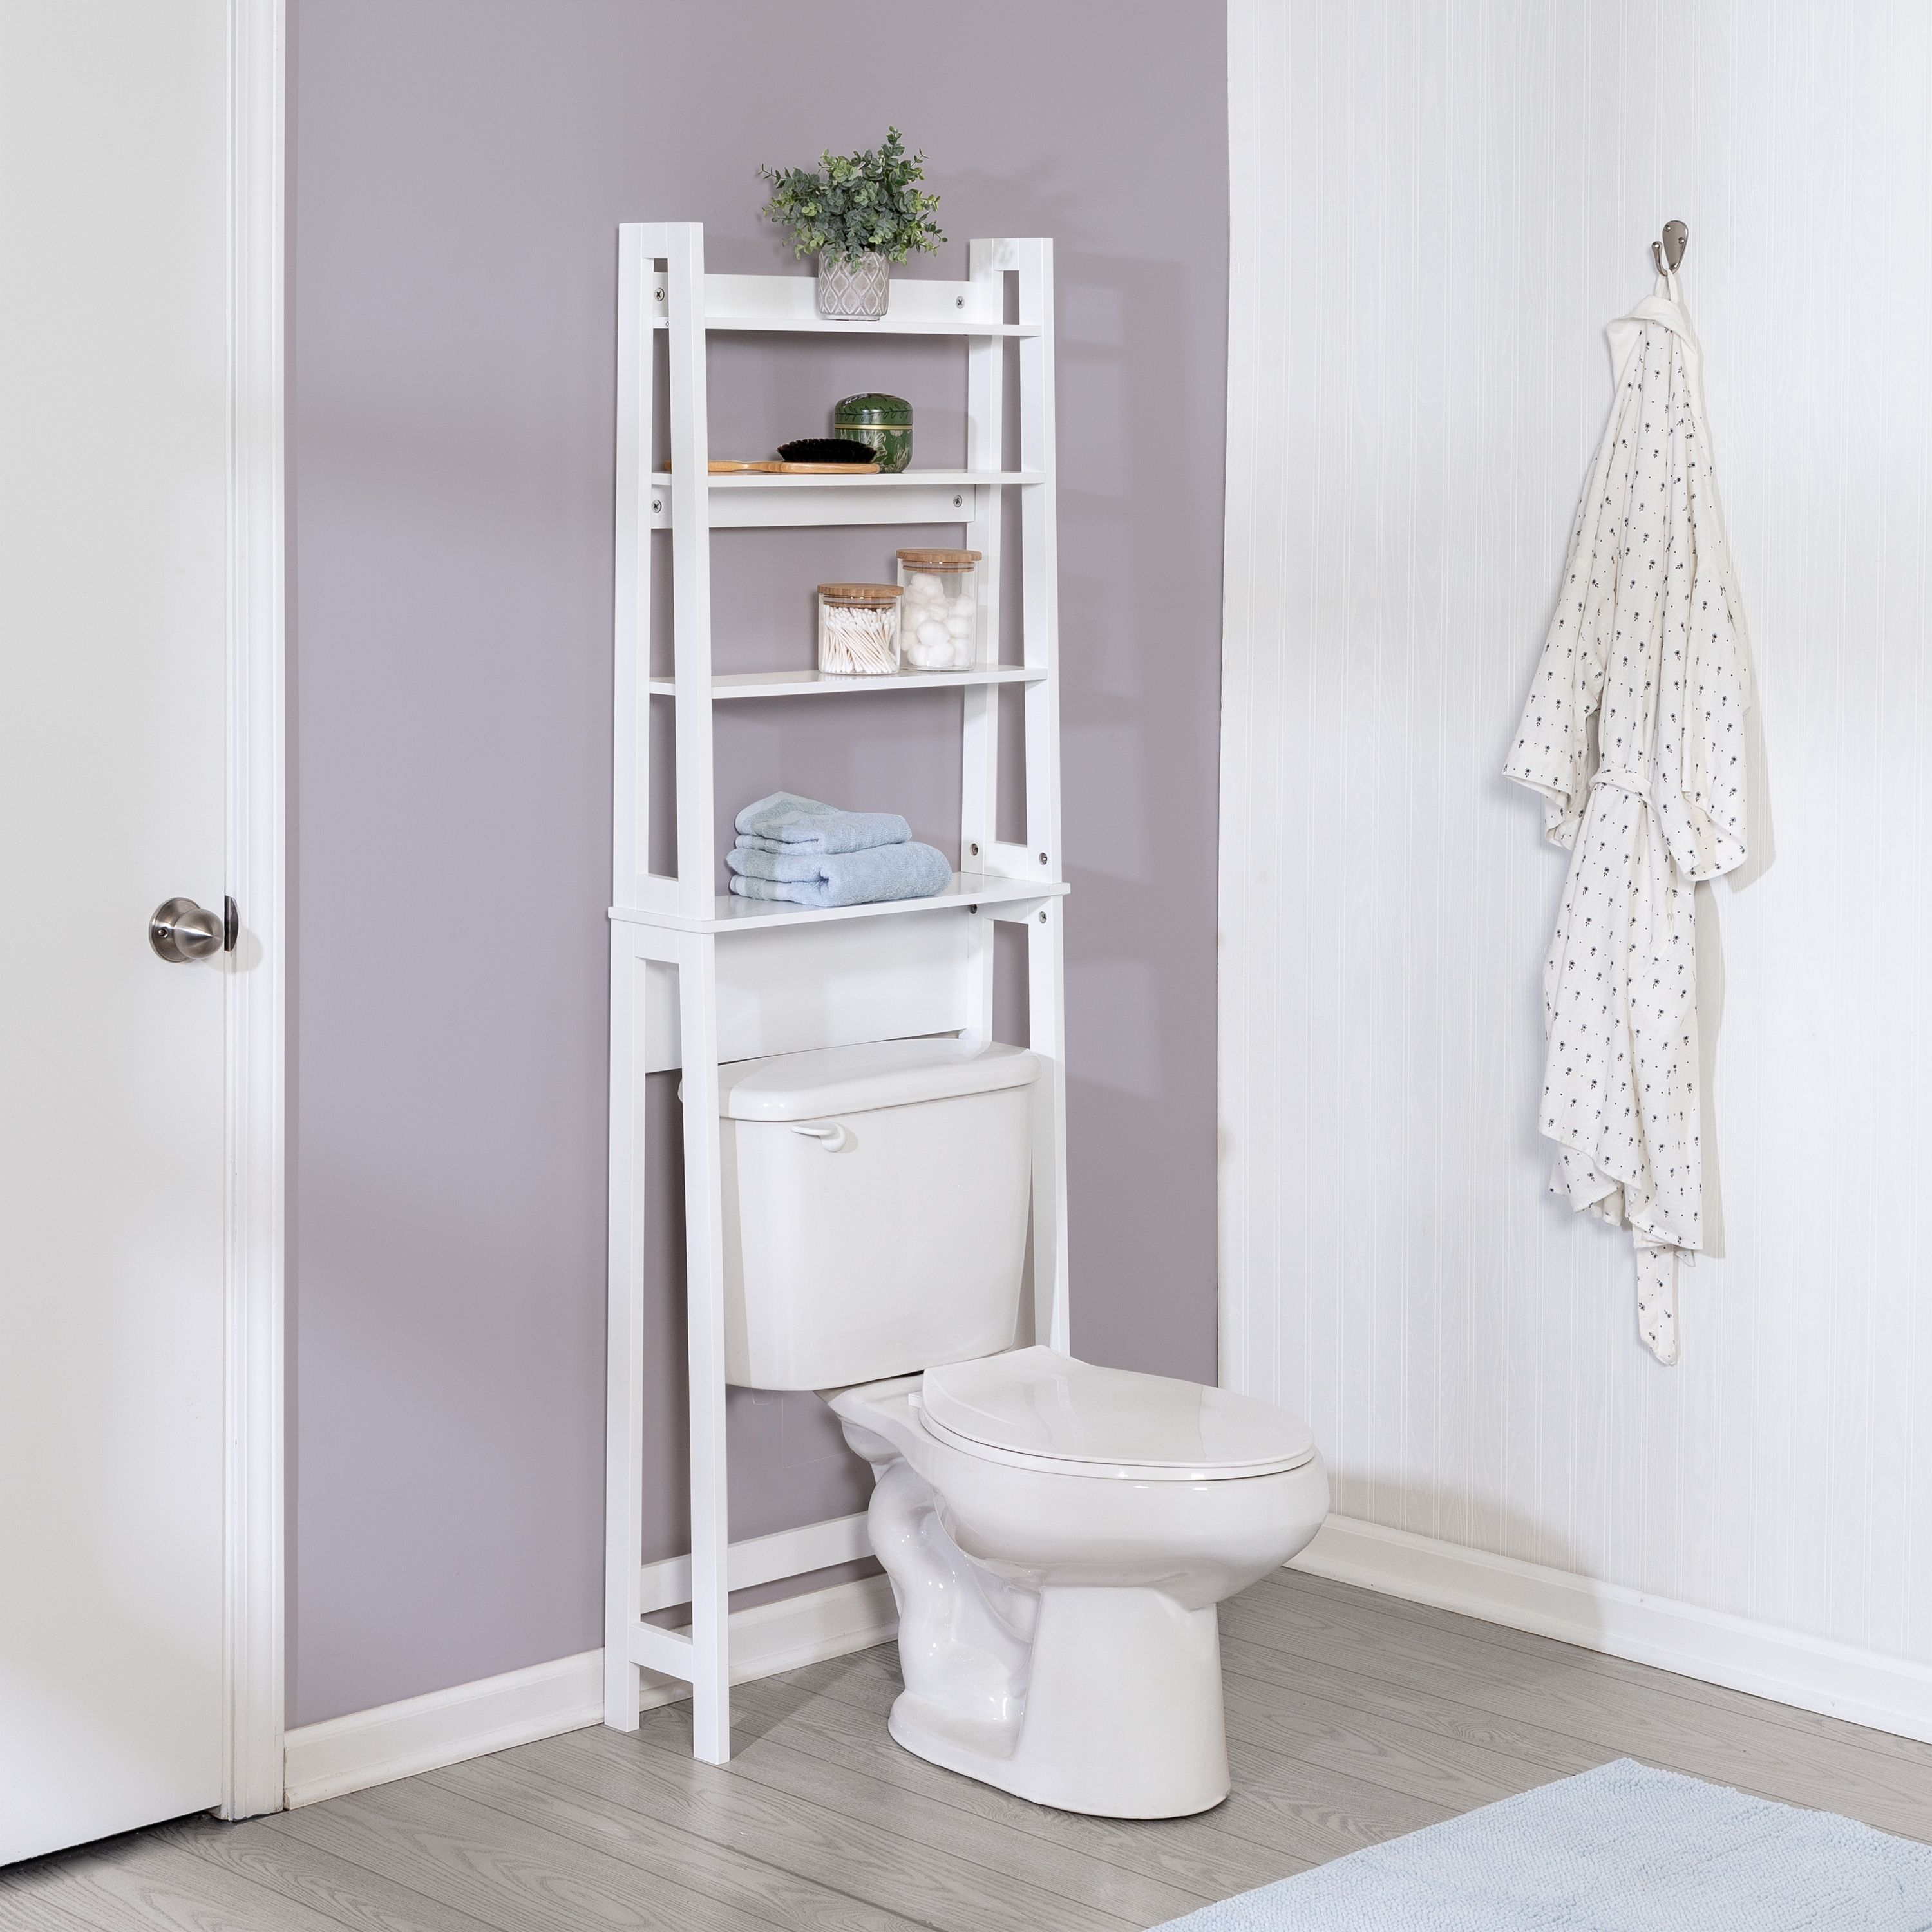 Honey Can Do Over The Toilet Bathroom Shelving Space Saver Ashley Furniture Homestore In 2021 Bathroom Space Saver Toilet Storage Over The Toilet